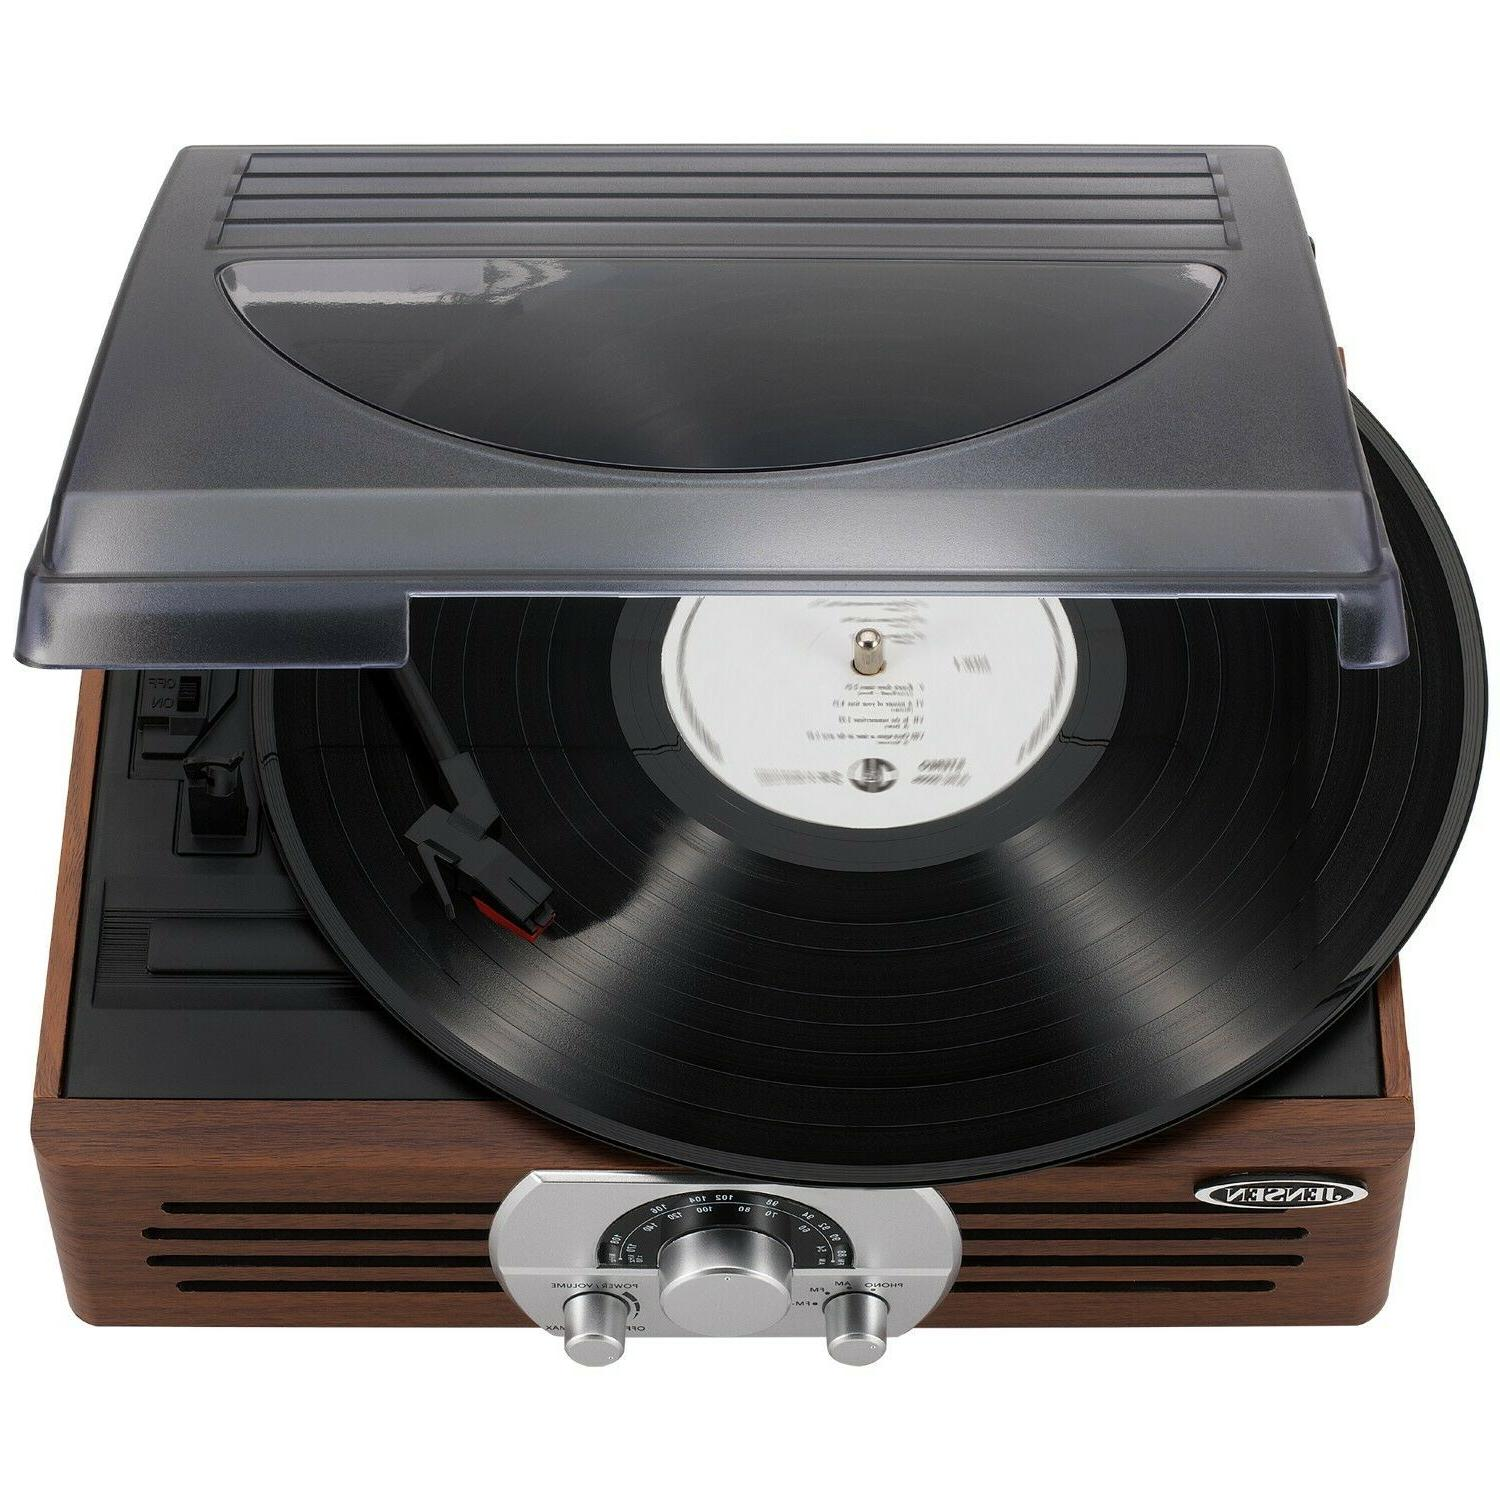 Jensen Turntable with Stereo Brand New!